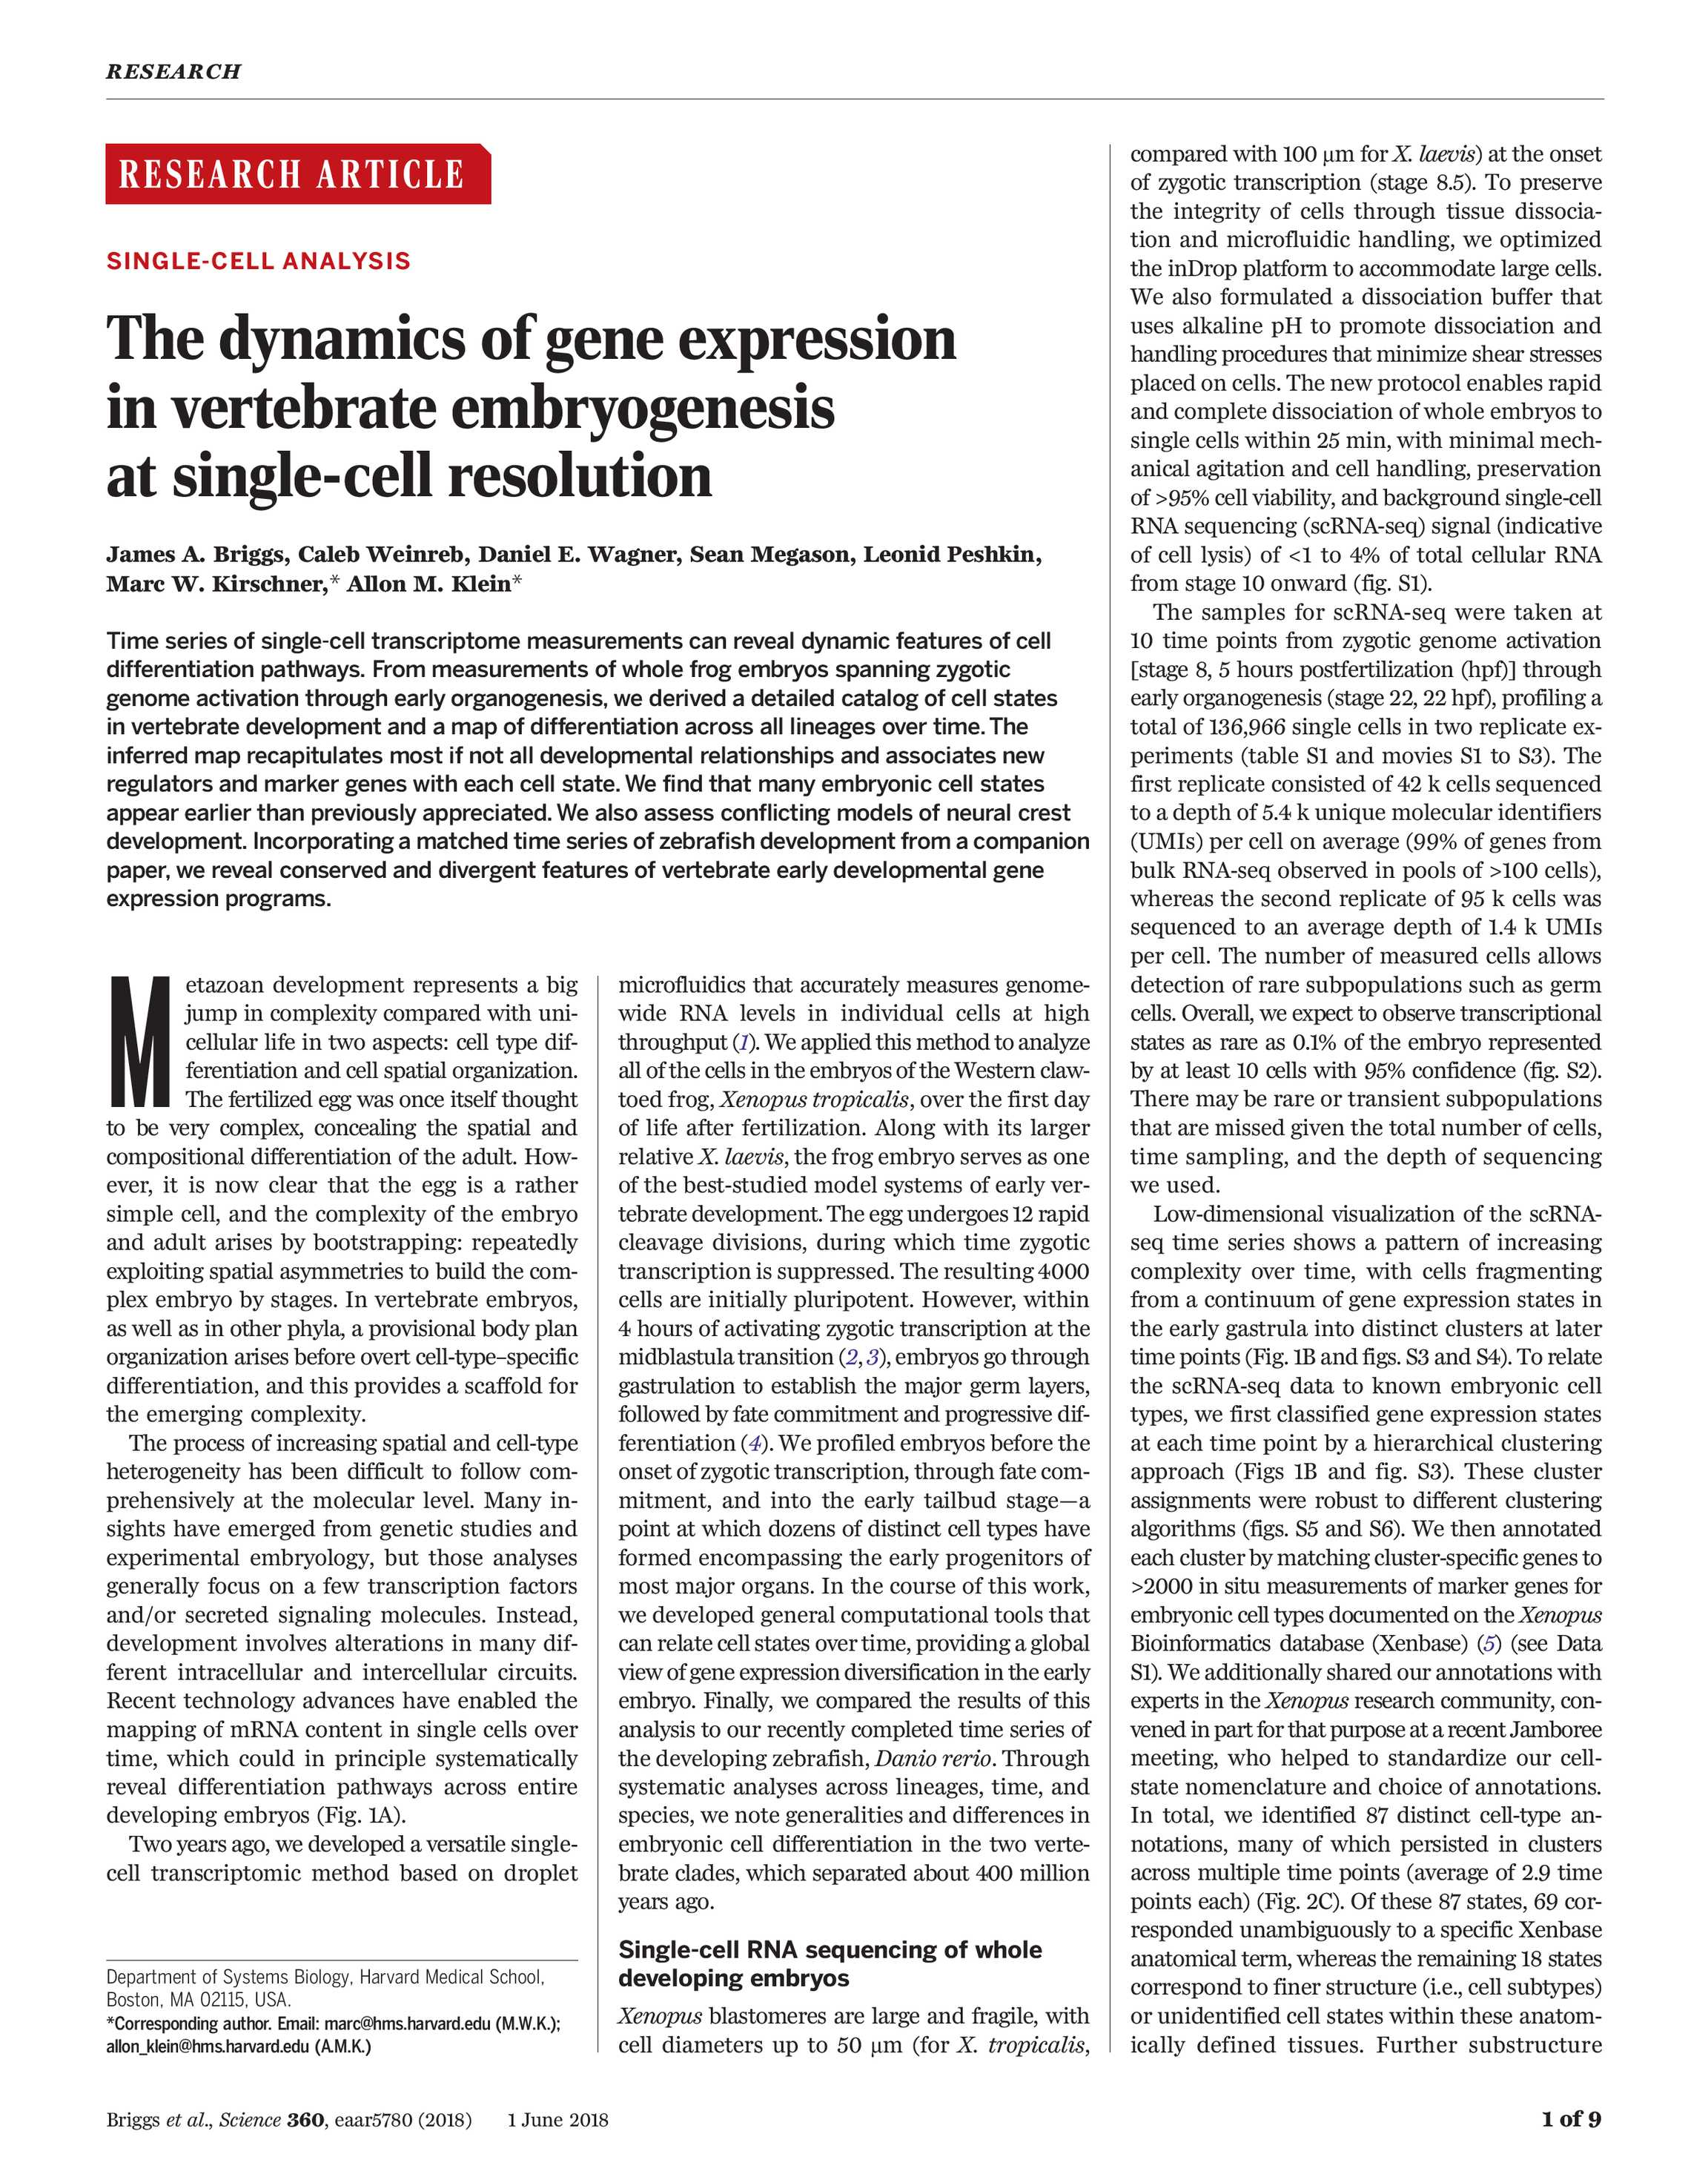 Science Magazine - June 1, 2018 - page 980